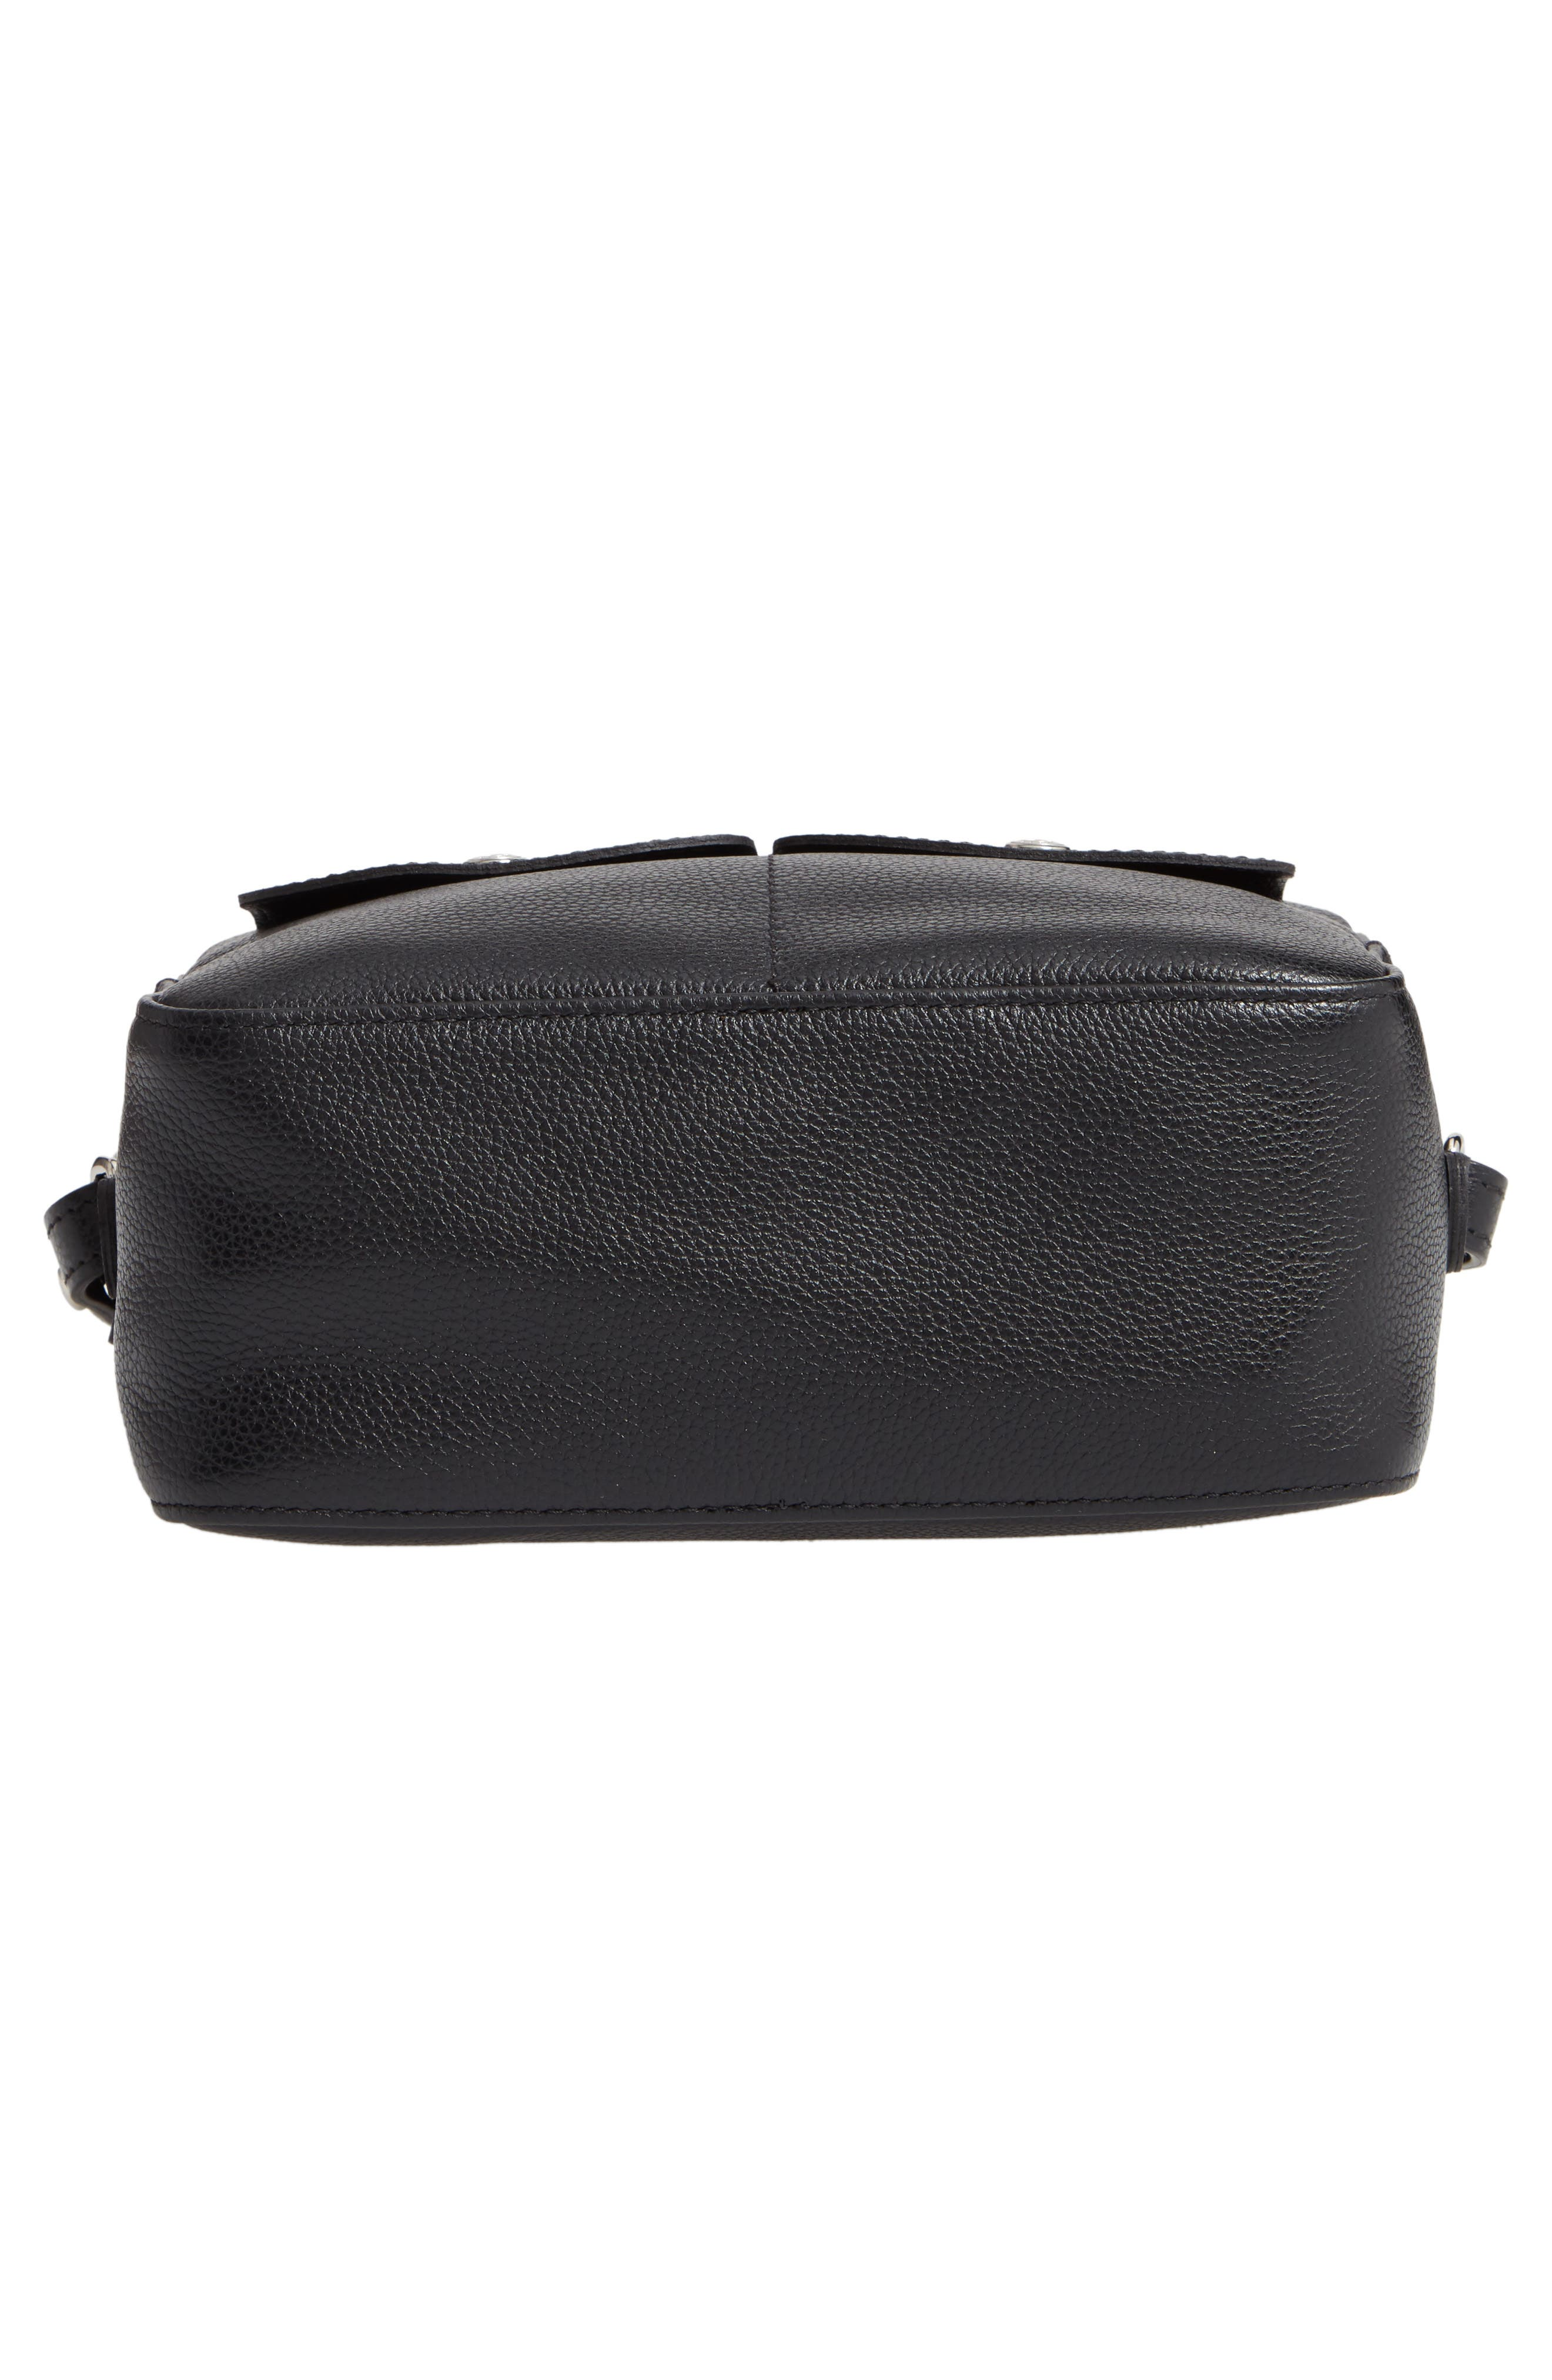 Le Foulonné Leather Camera Bag,                             Alternate thumbnail 6, color,                             BLACK